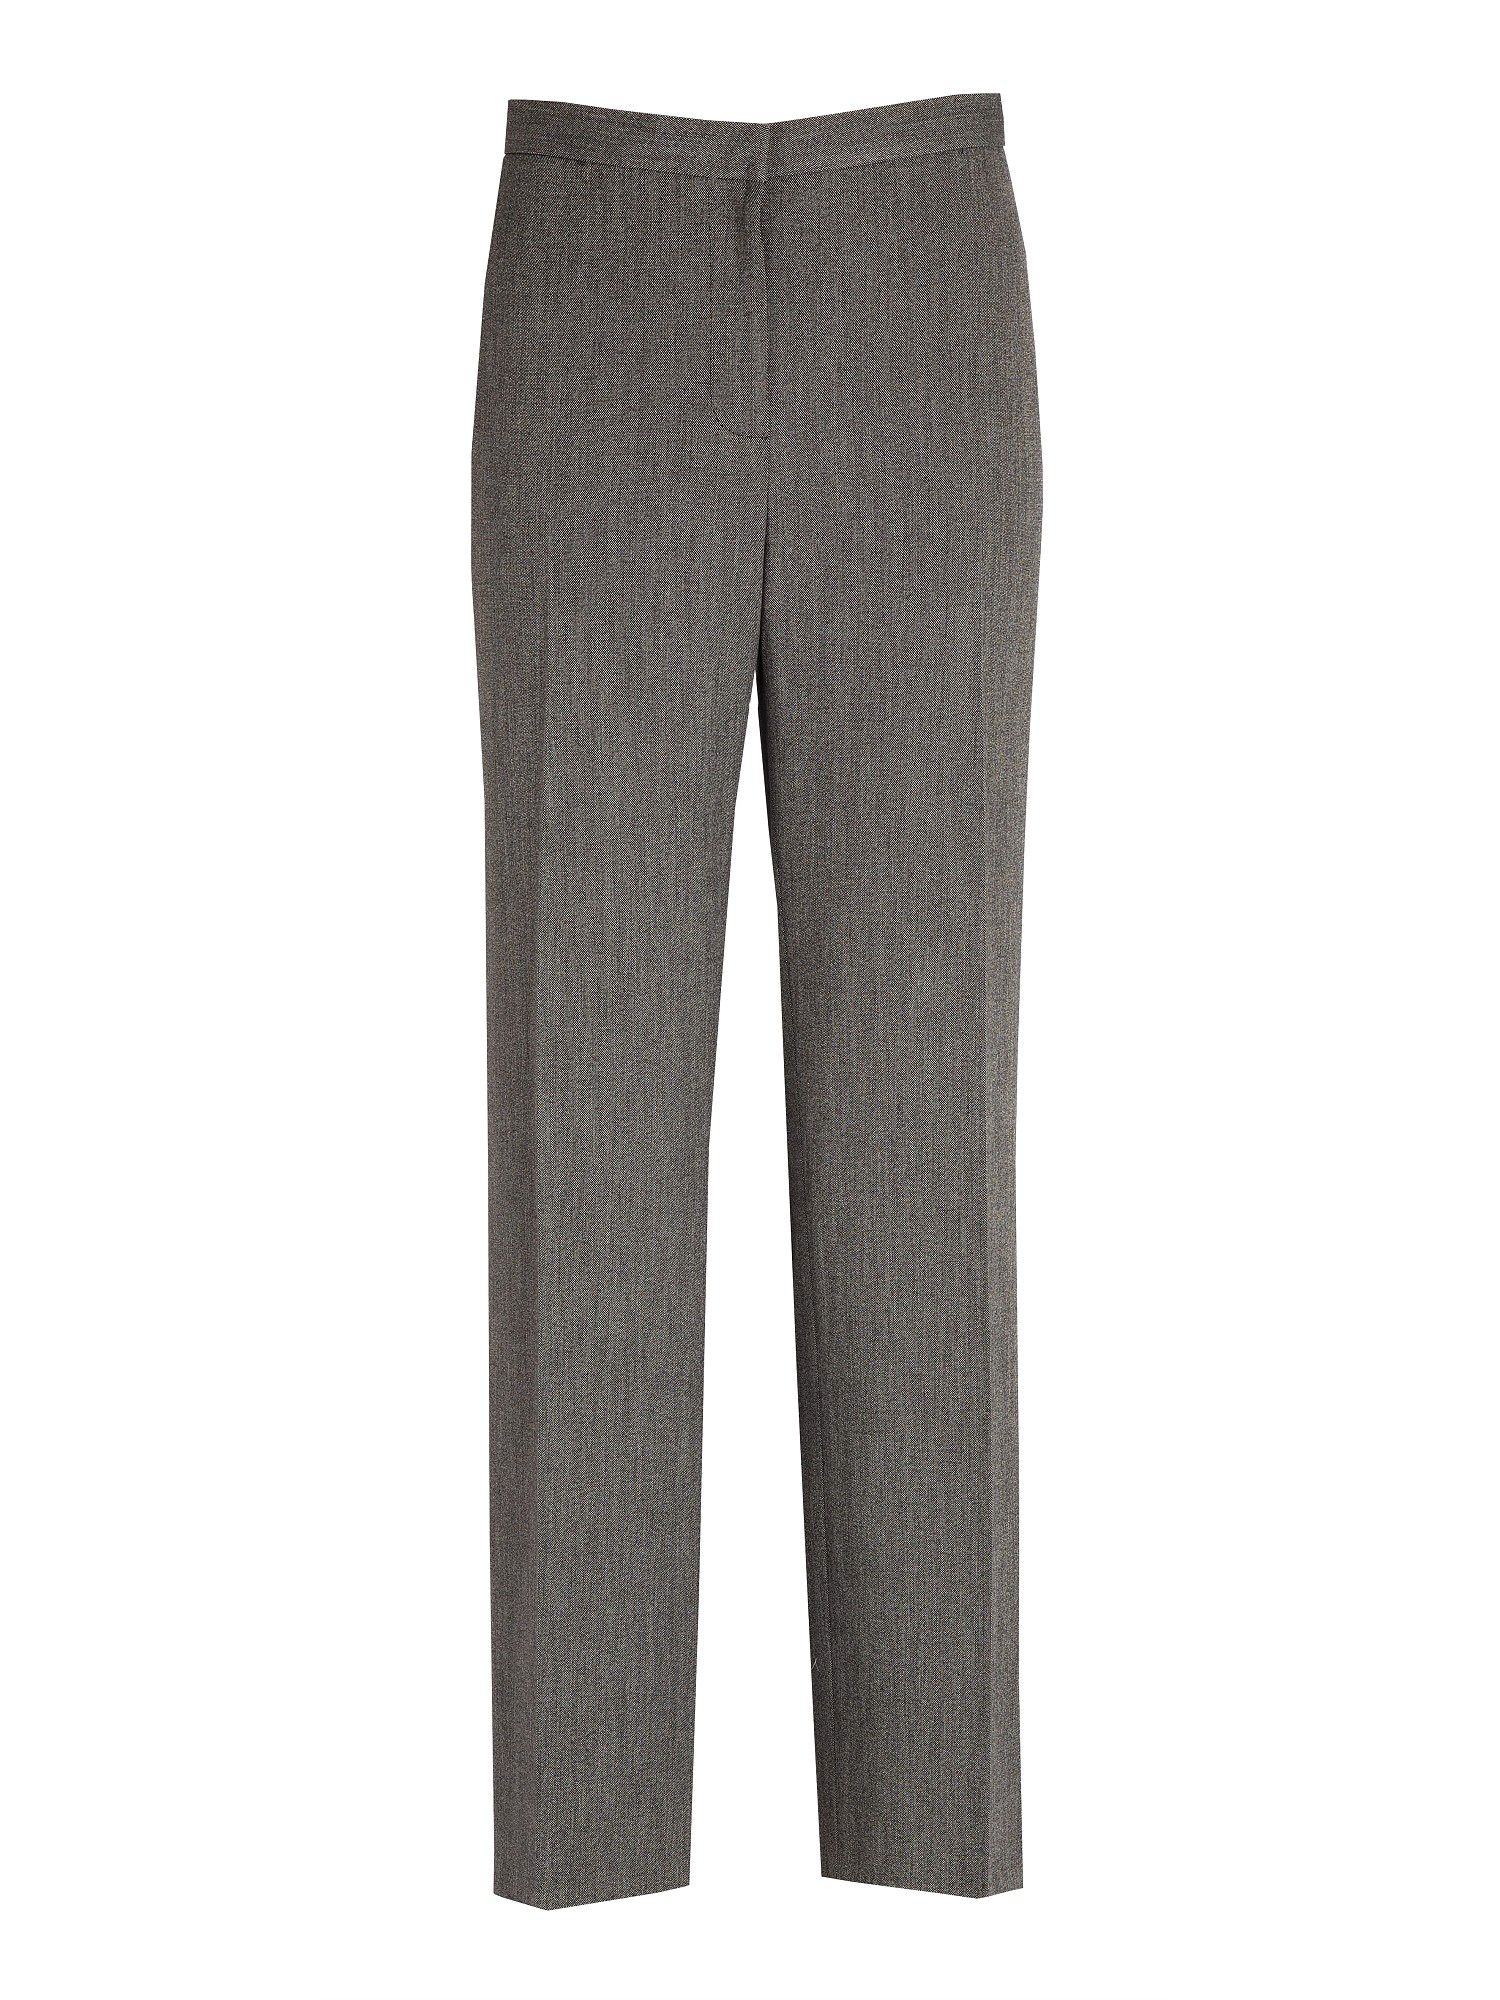 Textured tailored trouser